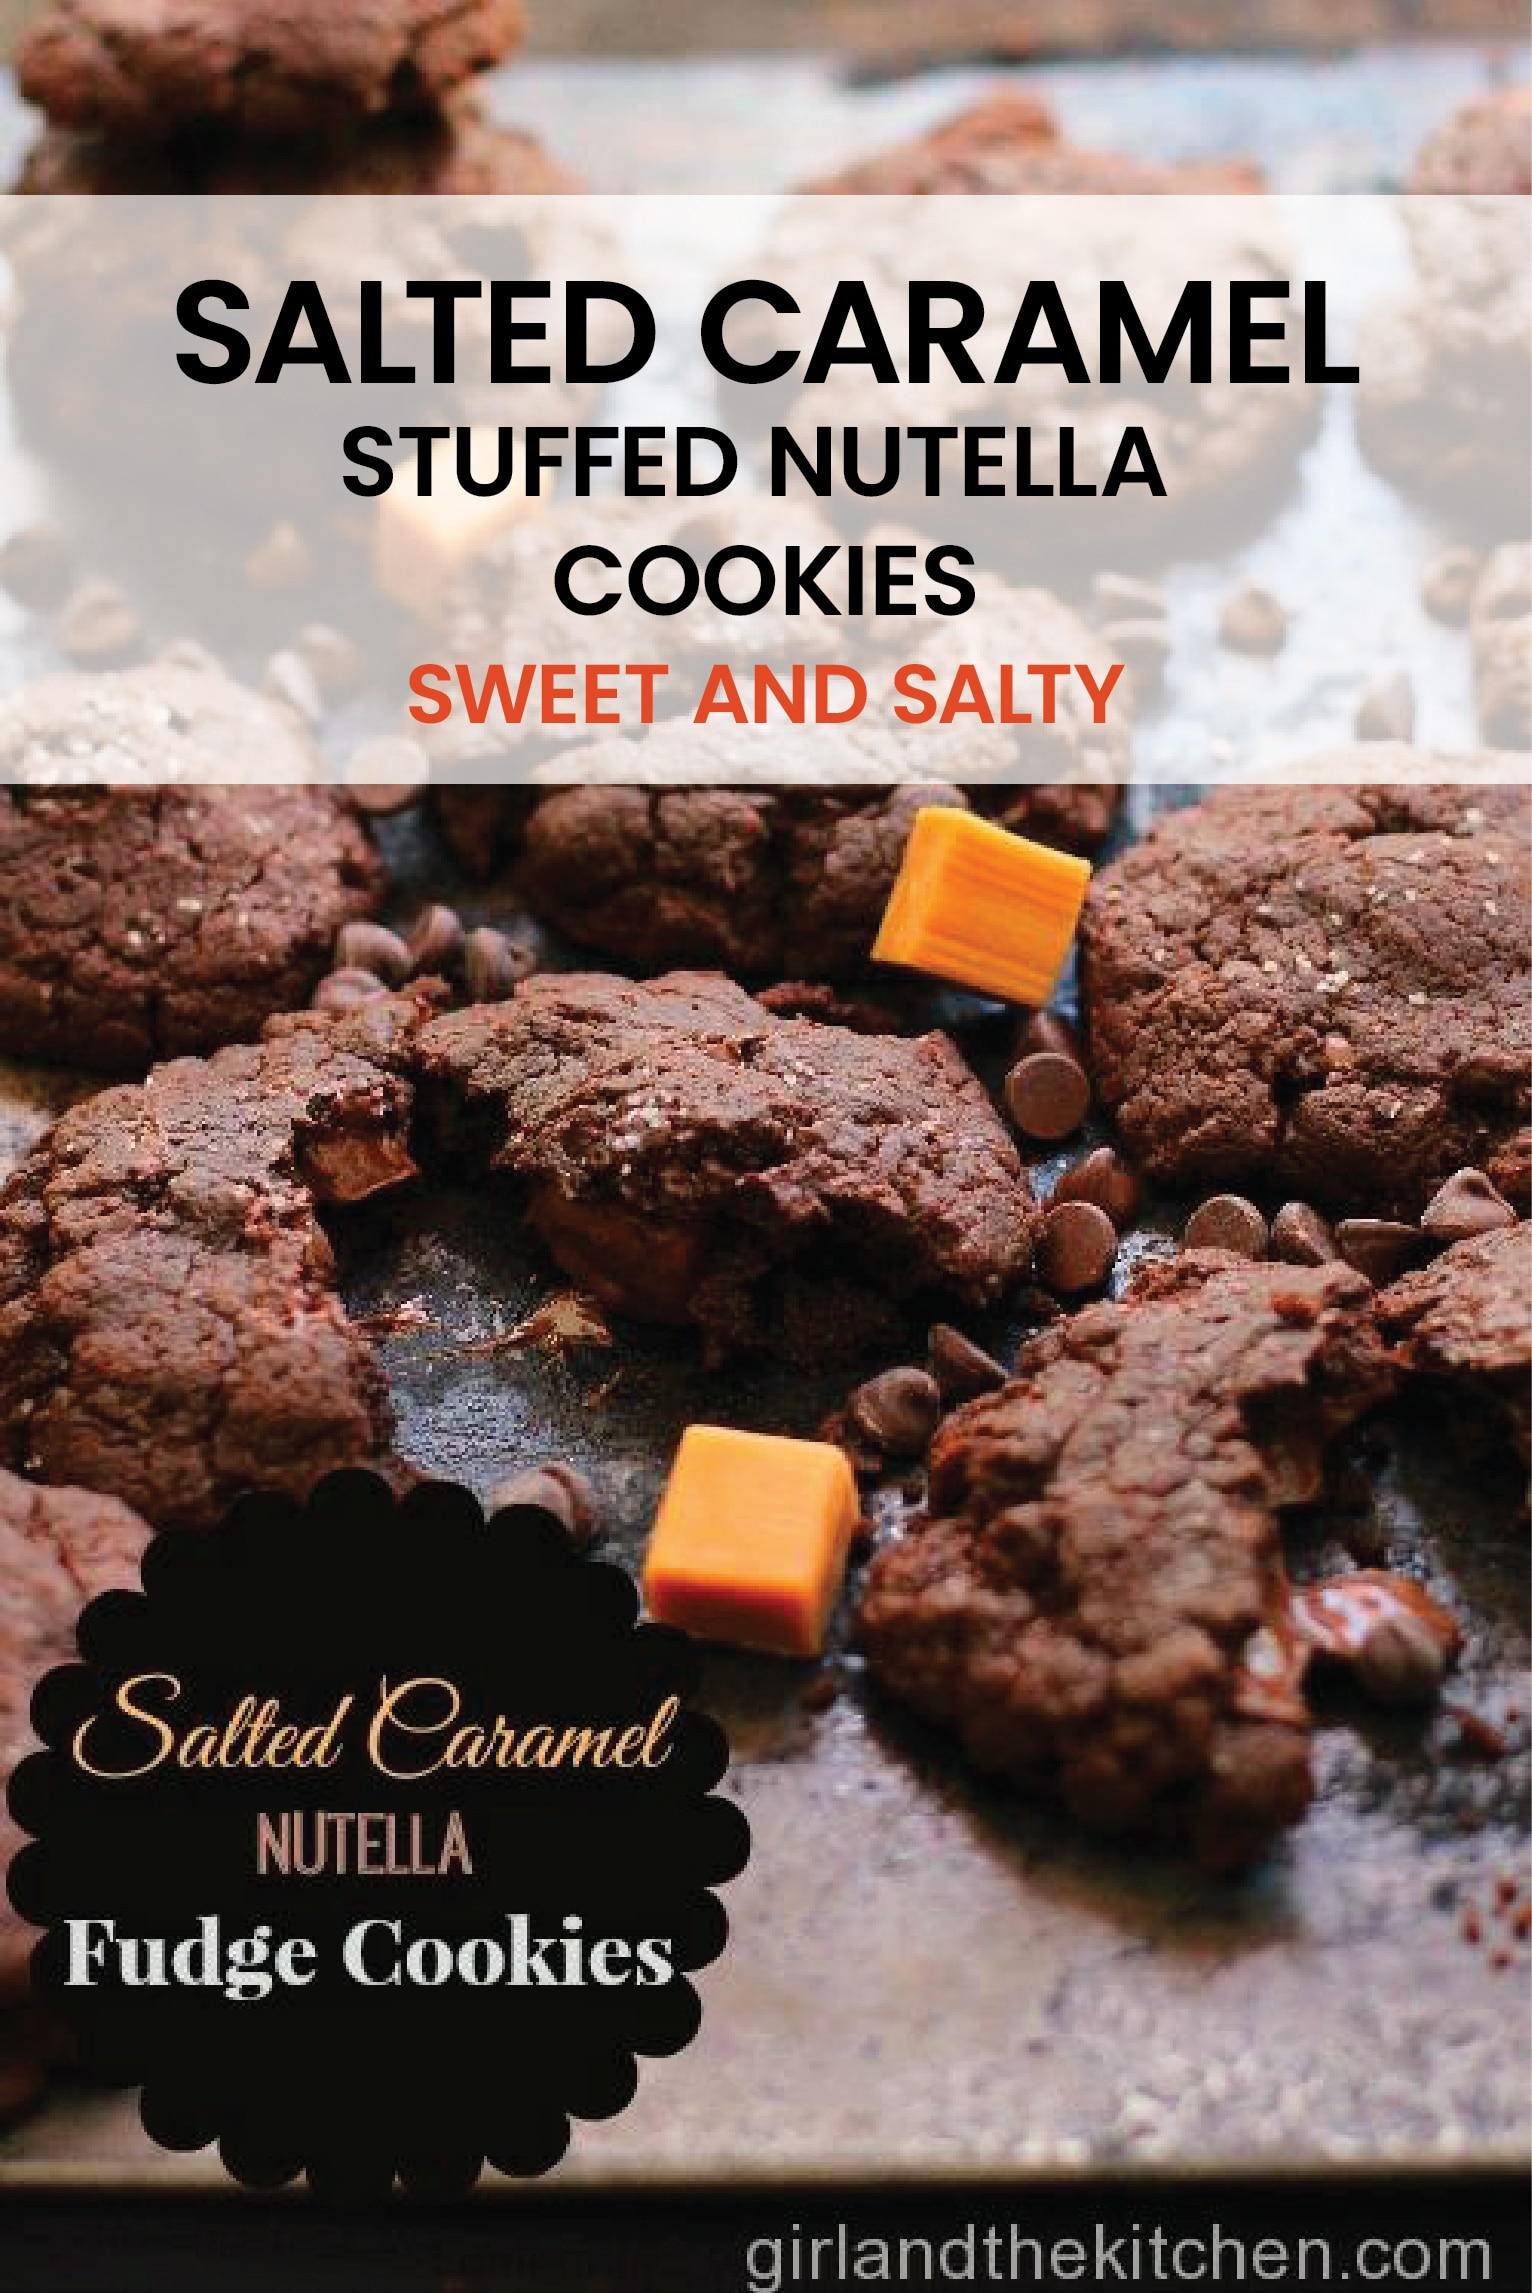 Super fudgy Nutella cookies stuffed with salted caramel and baked until gooey and warm inside. #nutellacookoies #nutella